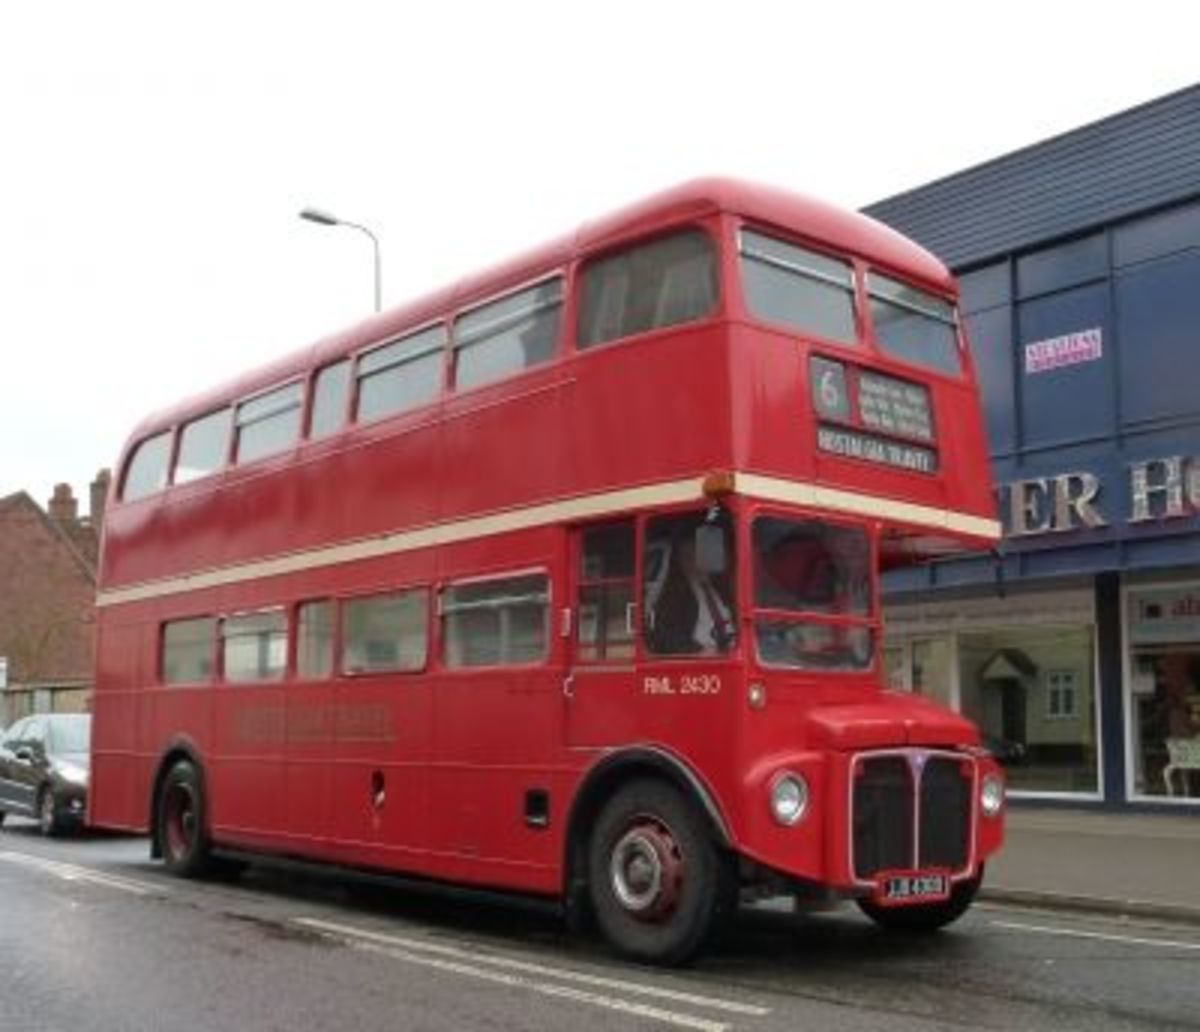 Routemaster Bus RML 2430 JJD 430D passing through  Abingdon on a  Rainy Day